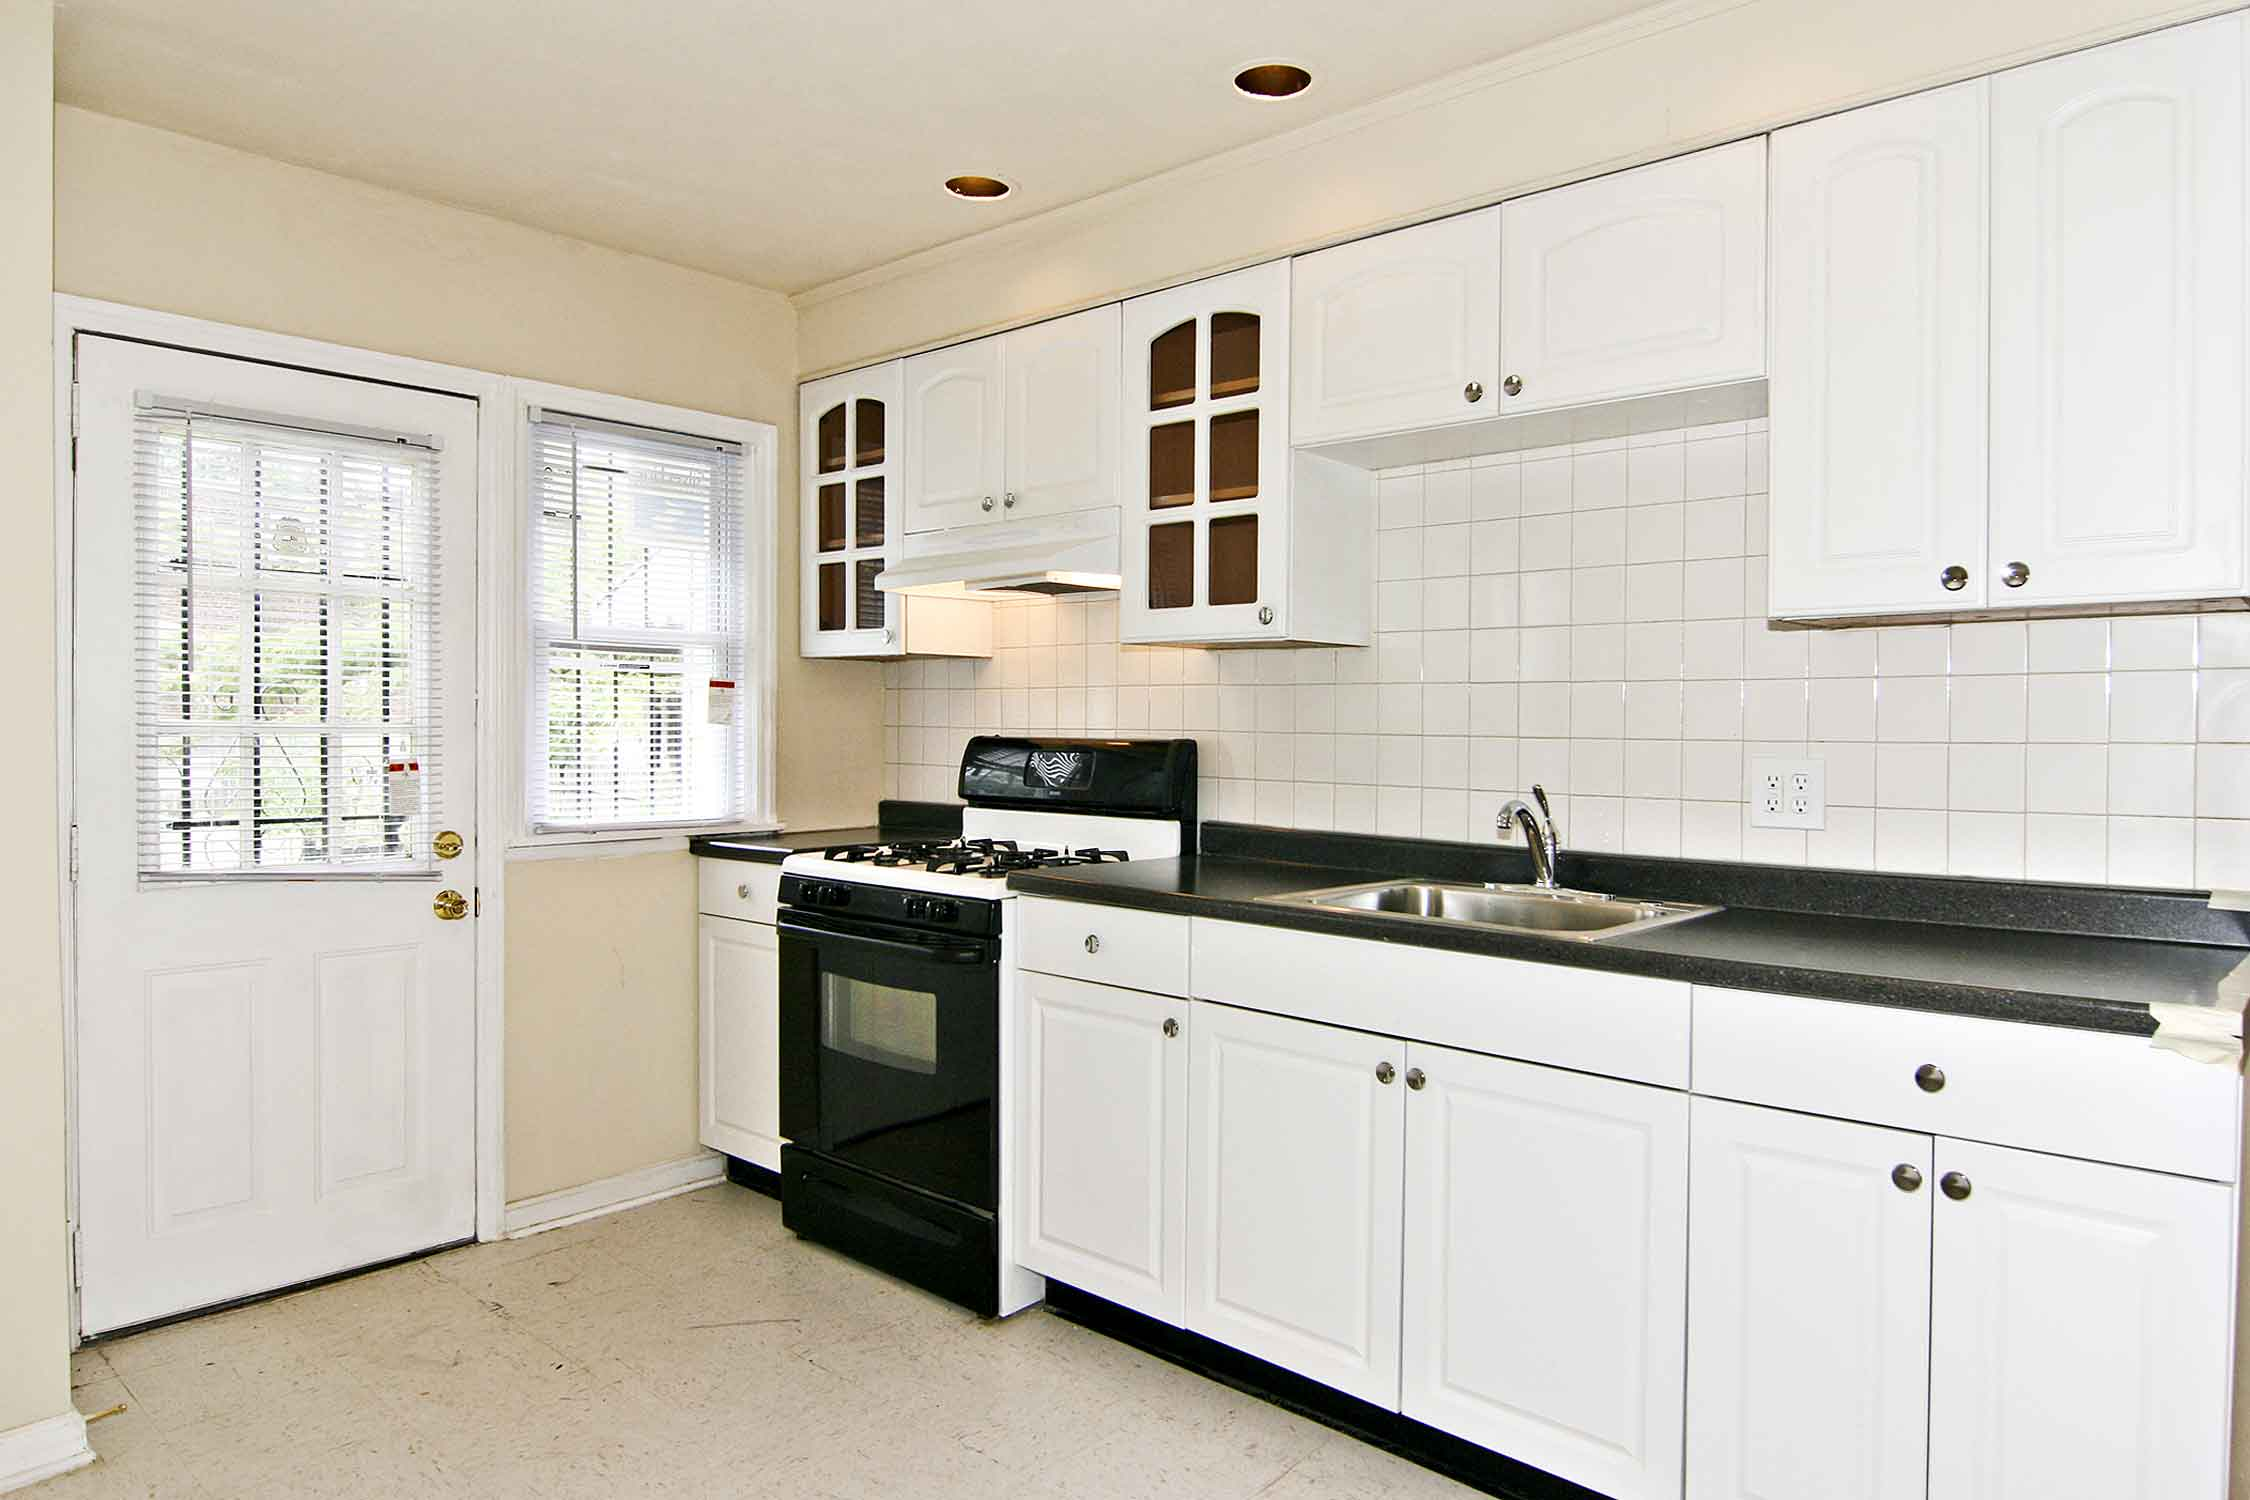 Kitchen Cabinets Clean White Kitchen Cabinets Photos Modern White